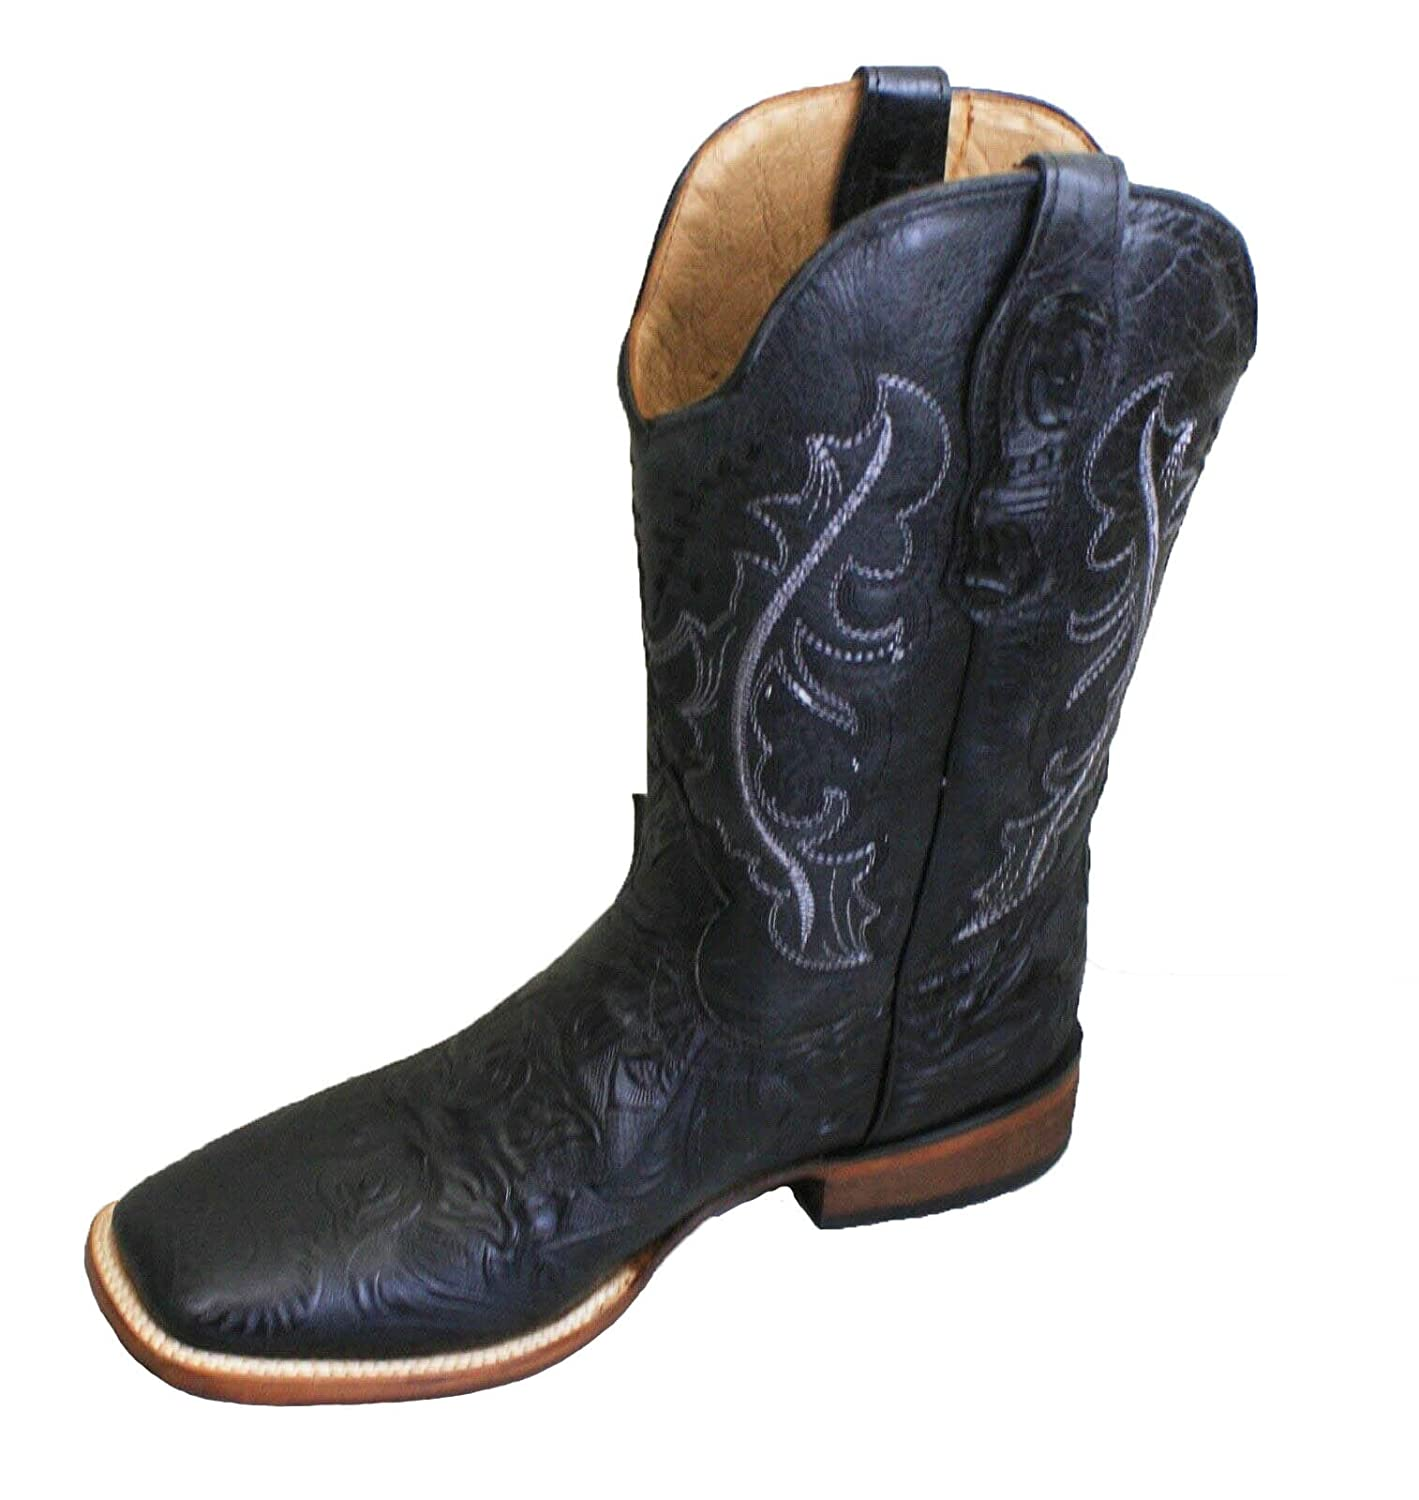 Mens Genuine Cowhide Hand Tooled Leather Square Toe Boots